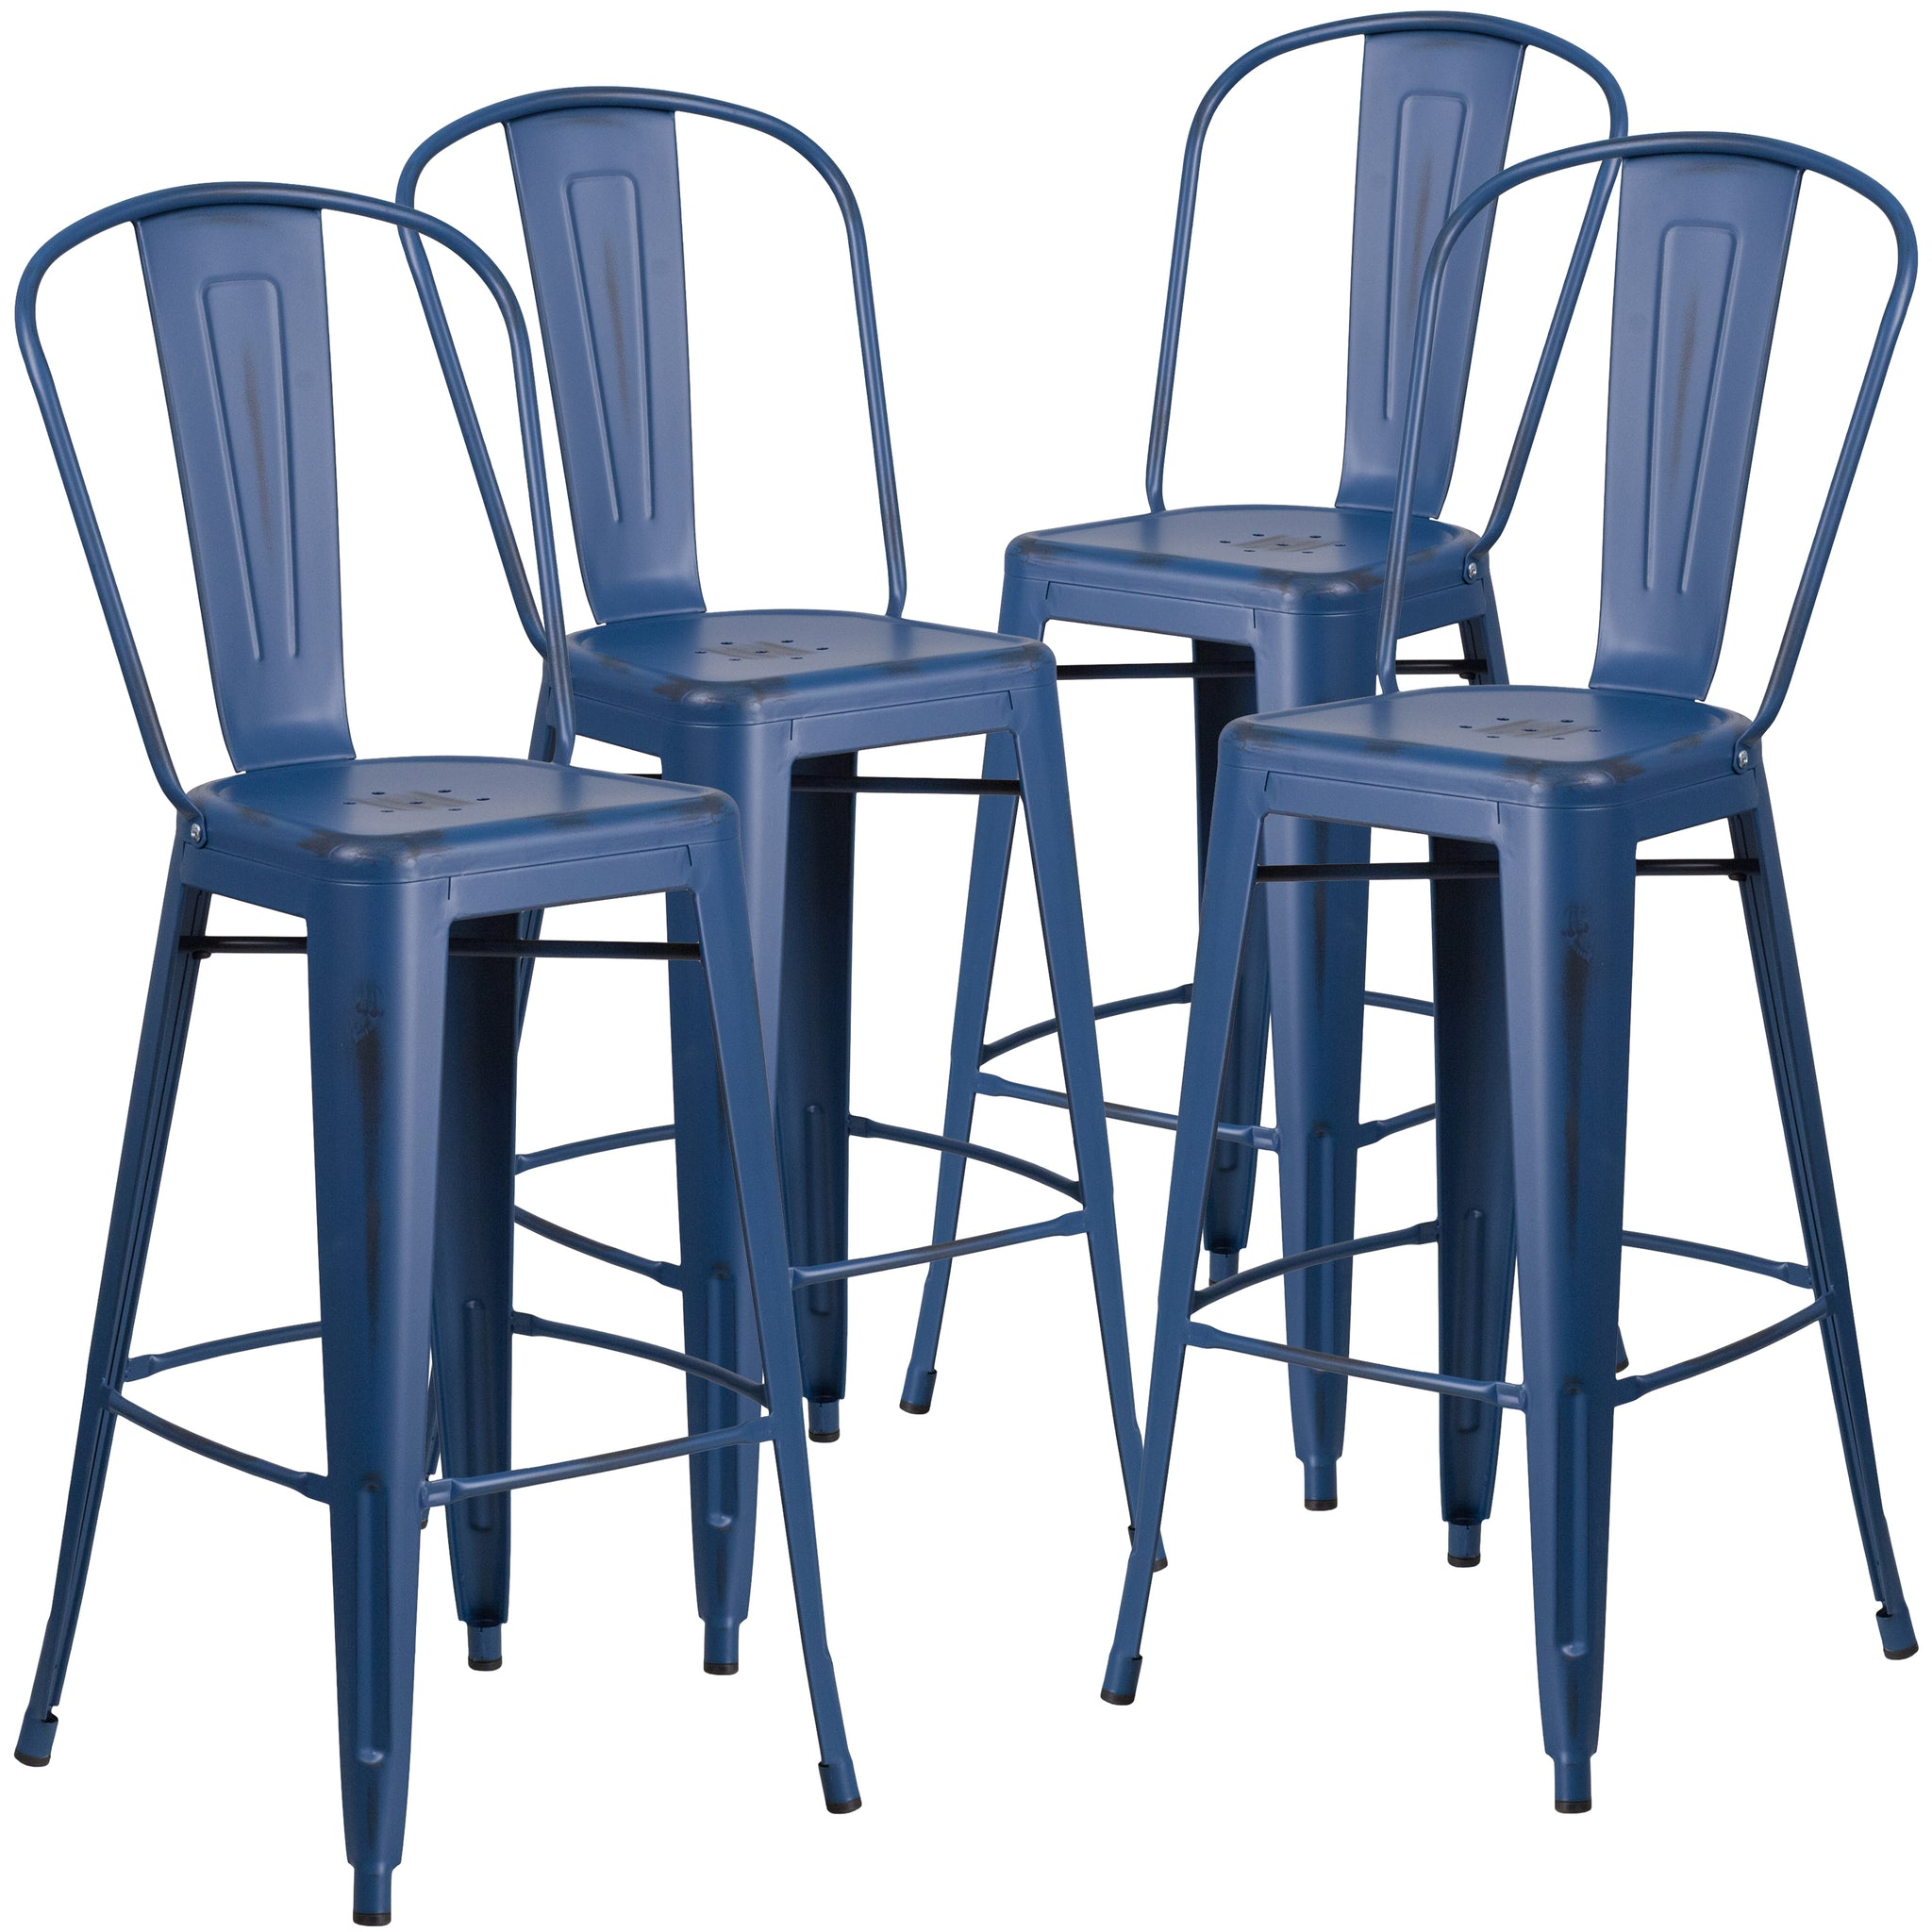 4 Pk. 30'' High Distressed Metal Indoor-Outdoor Barstool with Back: Antique Blue